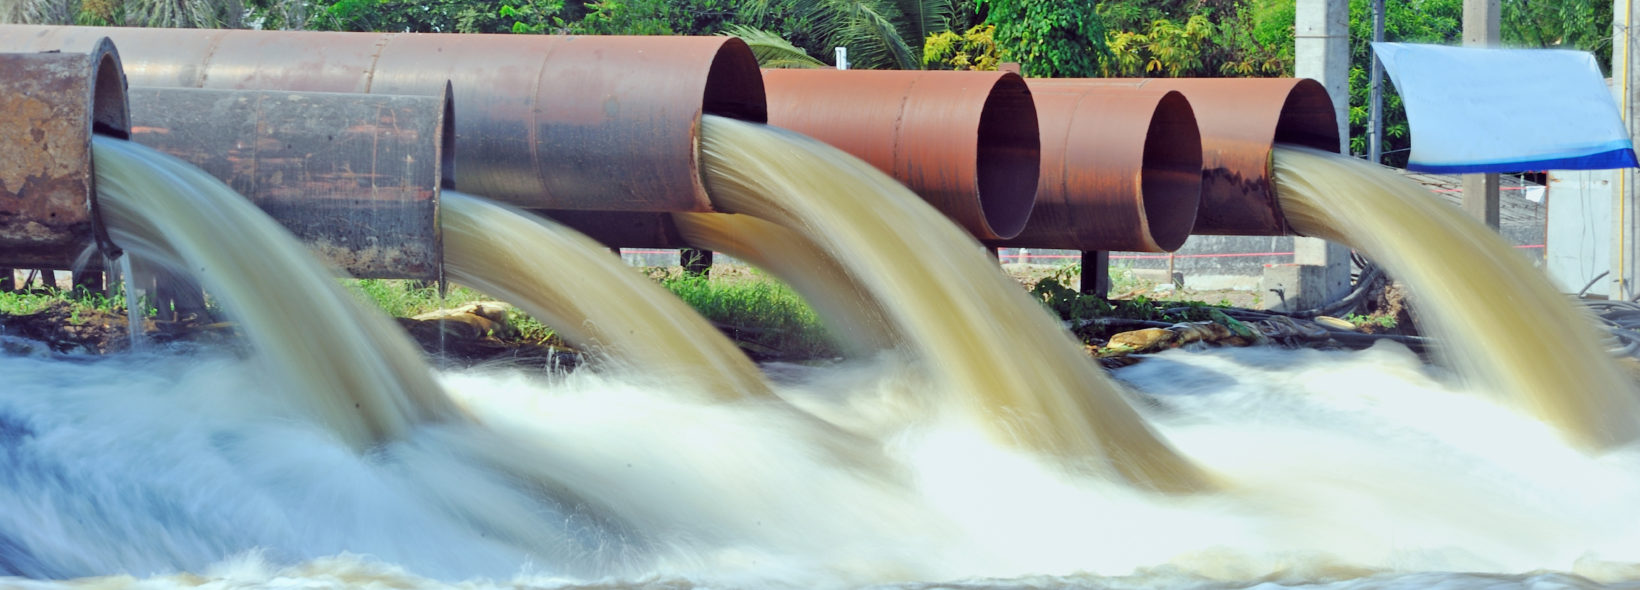 Dirty Water from Pipes